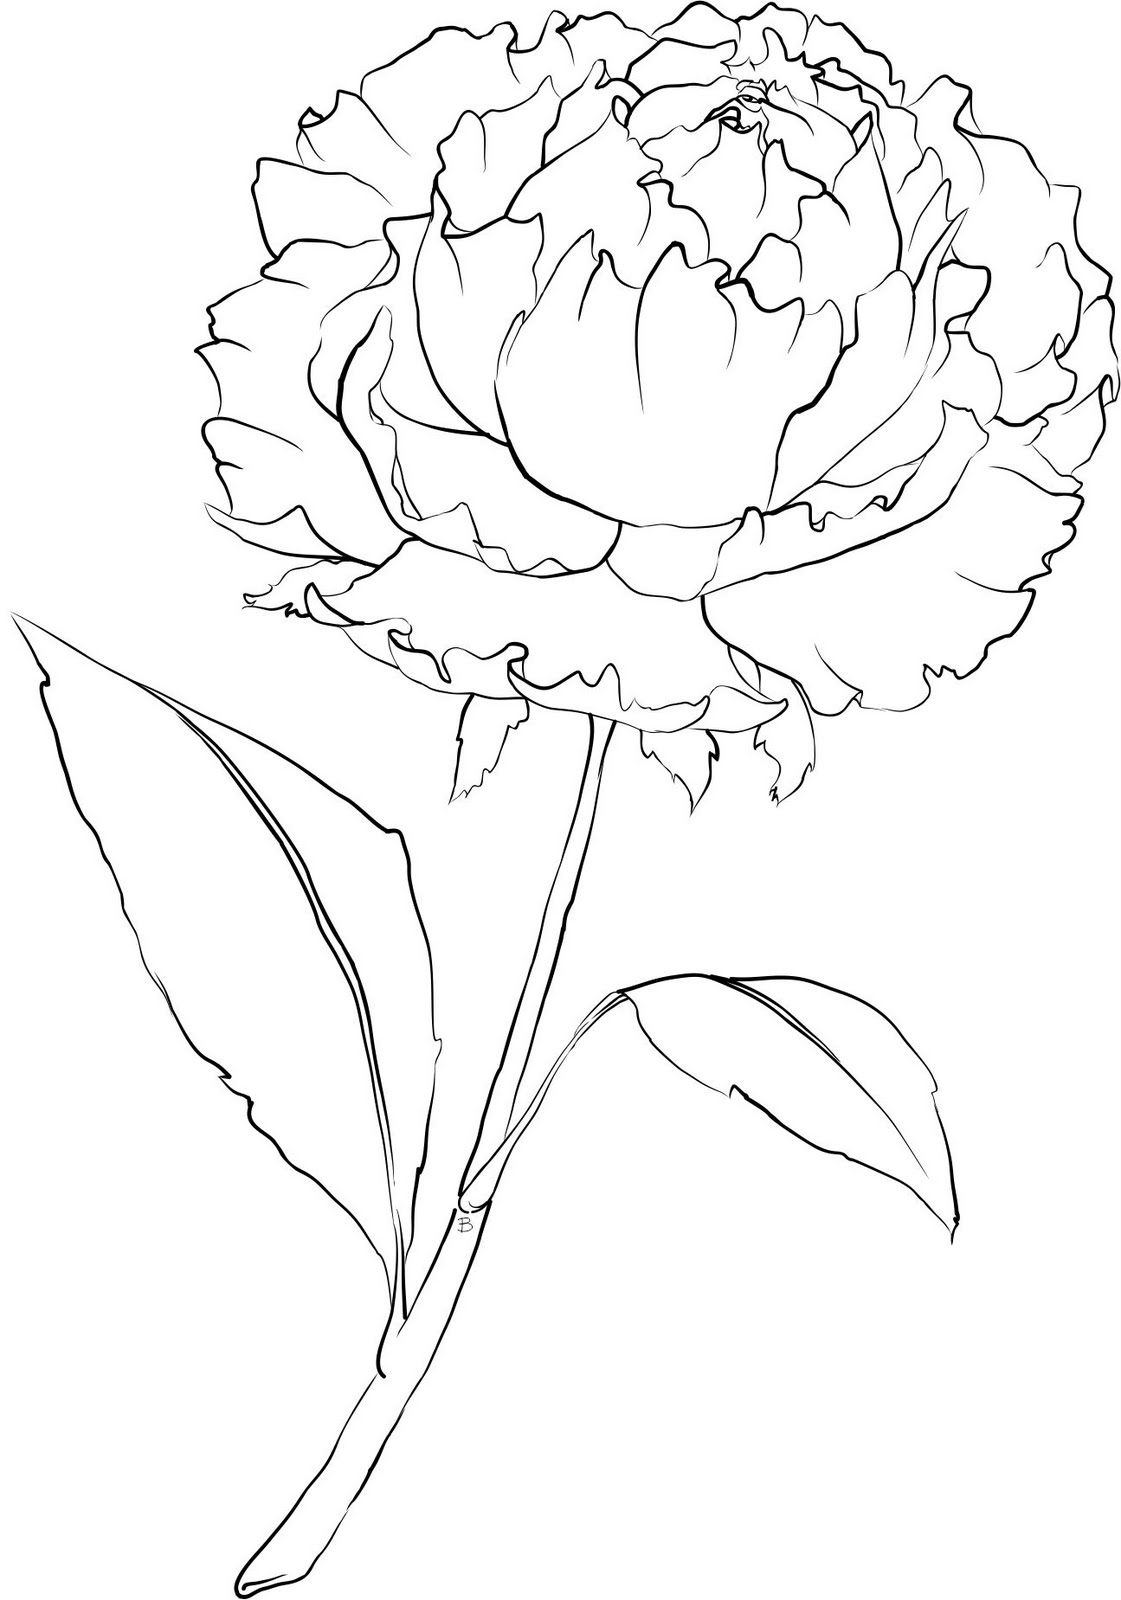 carnation coloring page carnation flowers coloring pages printable free for carnation coloring page